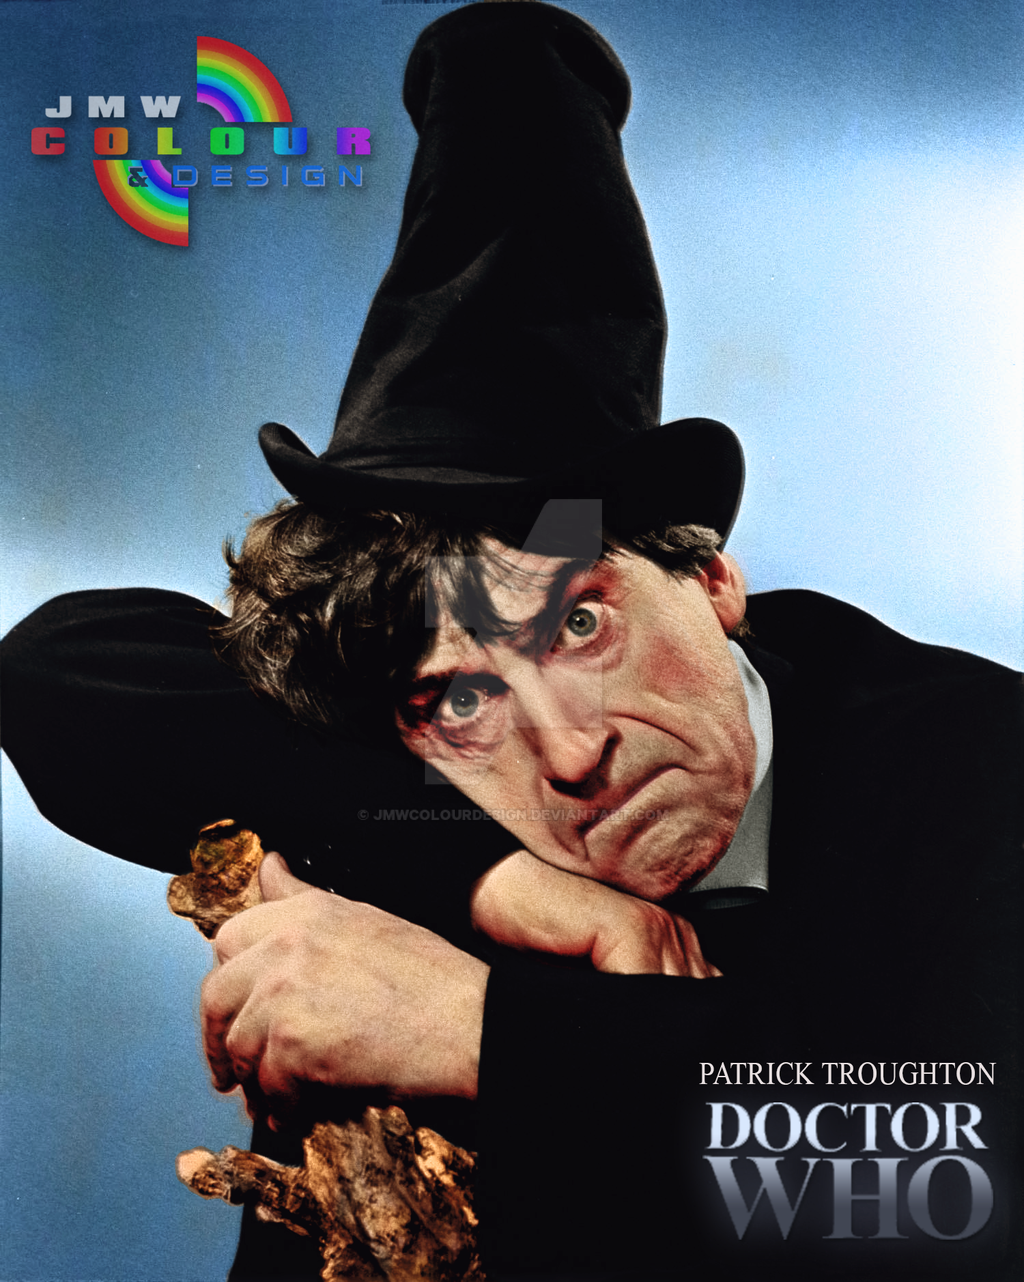 patrick troughton episodes